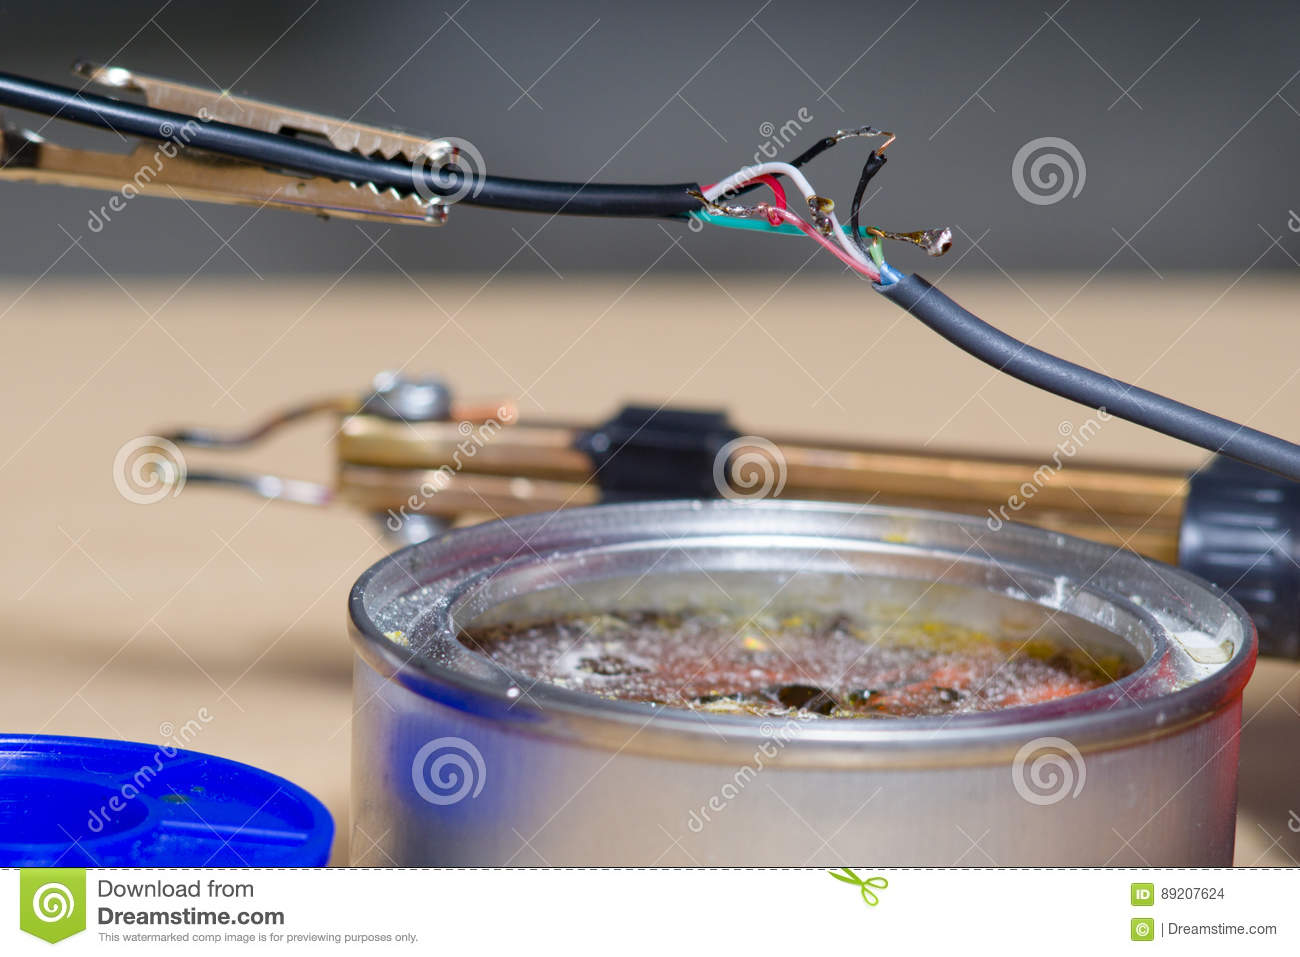 Soldering of electronic wires